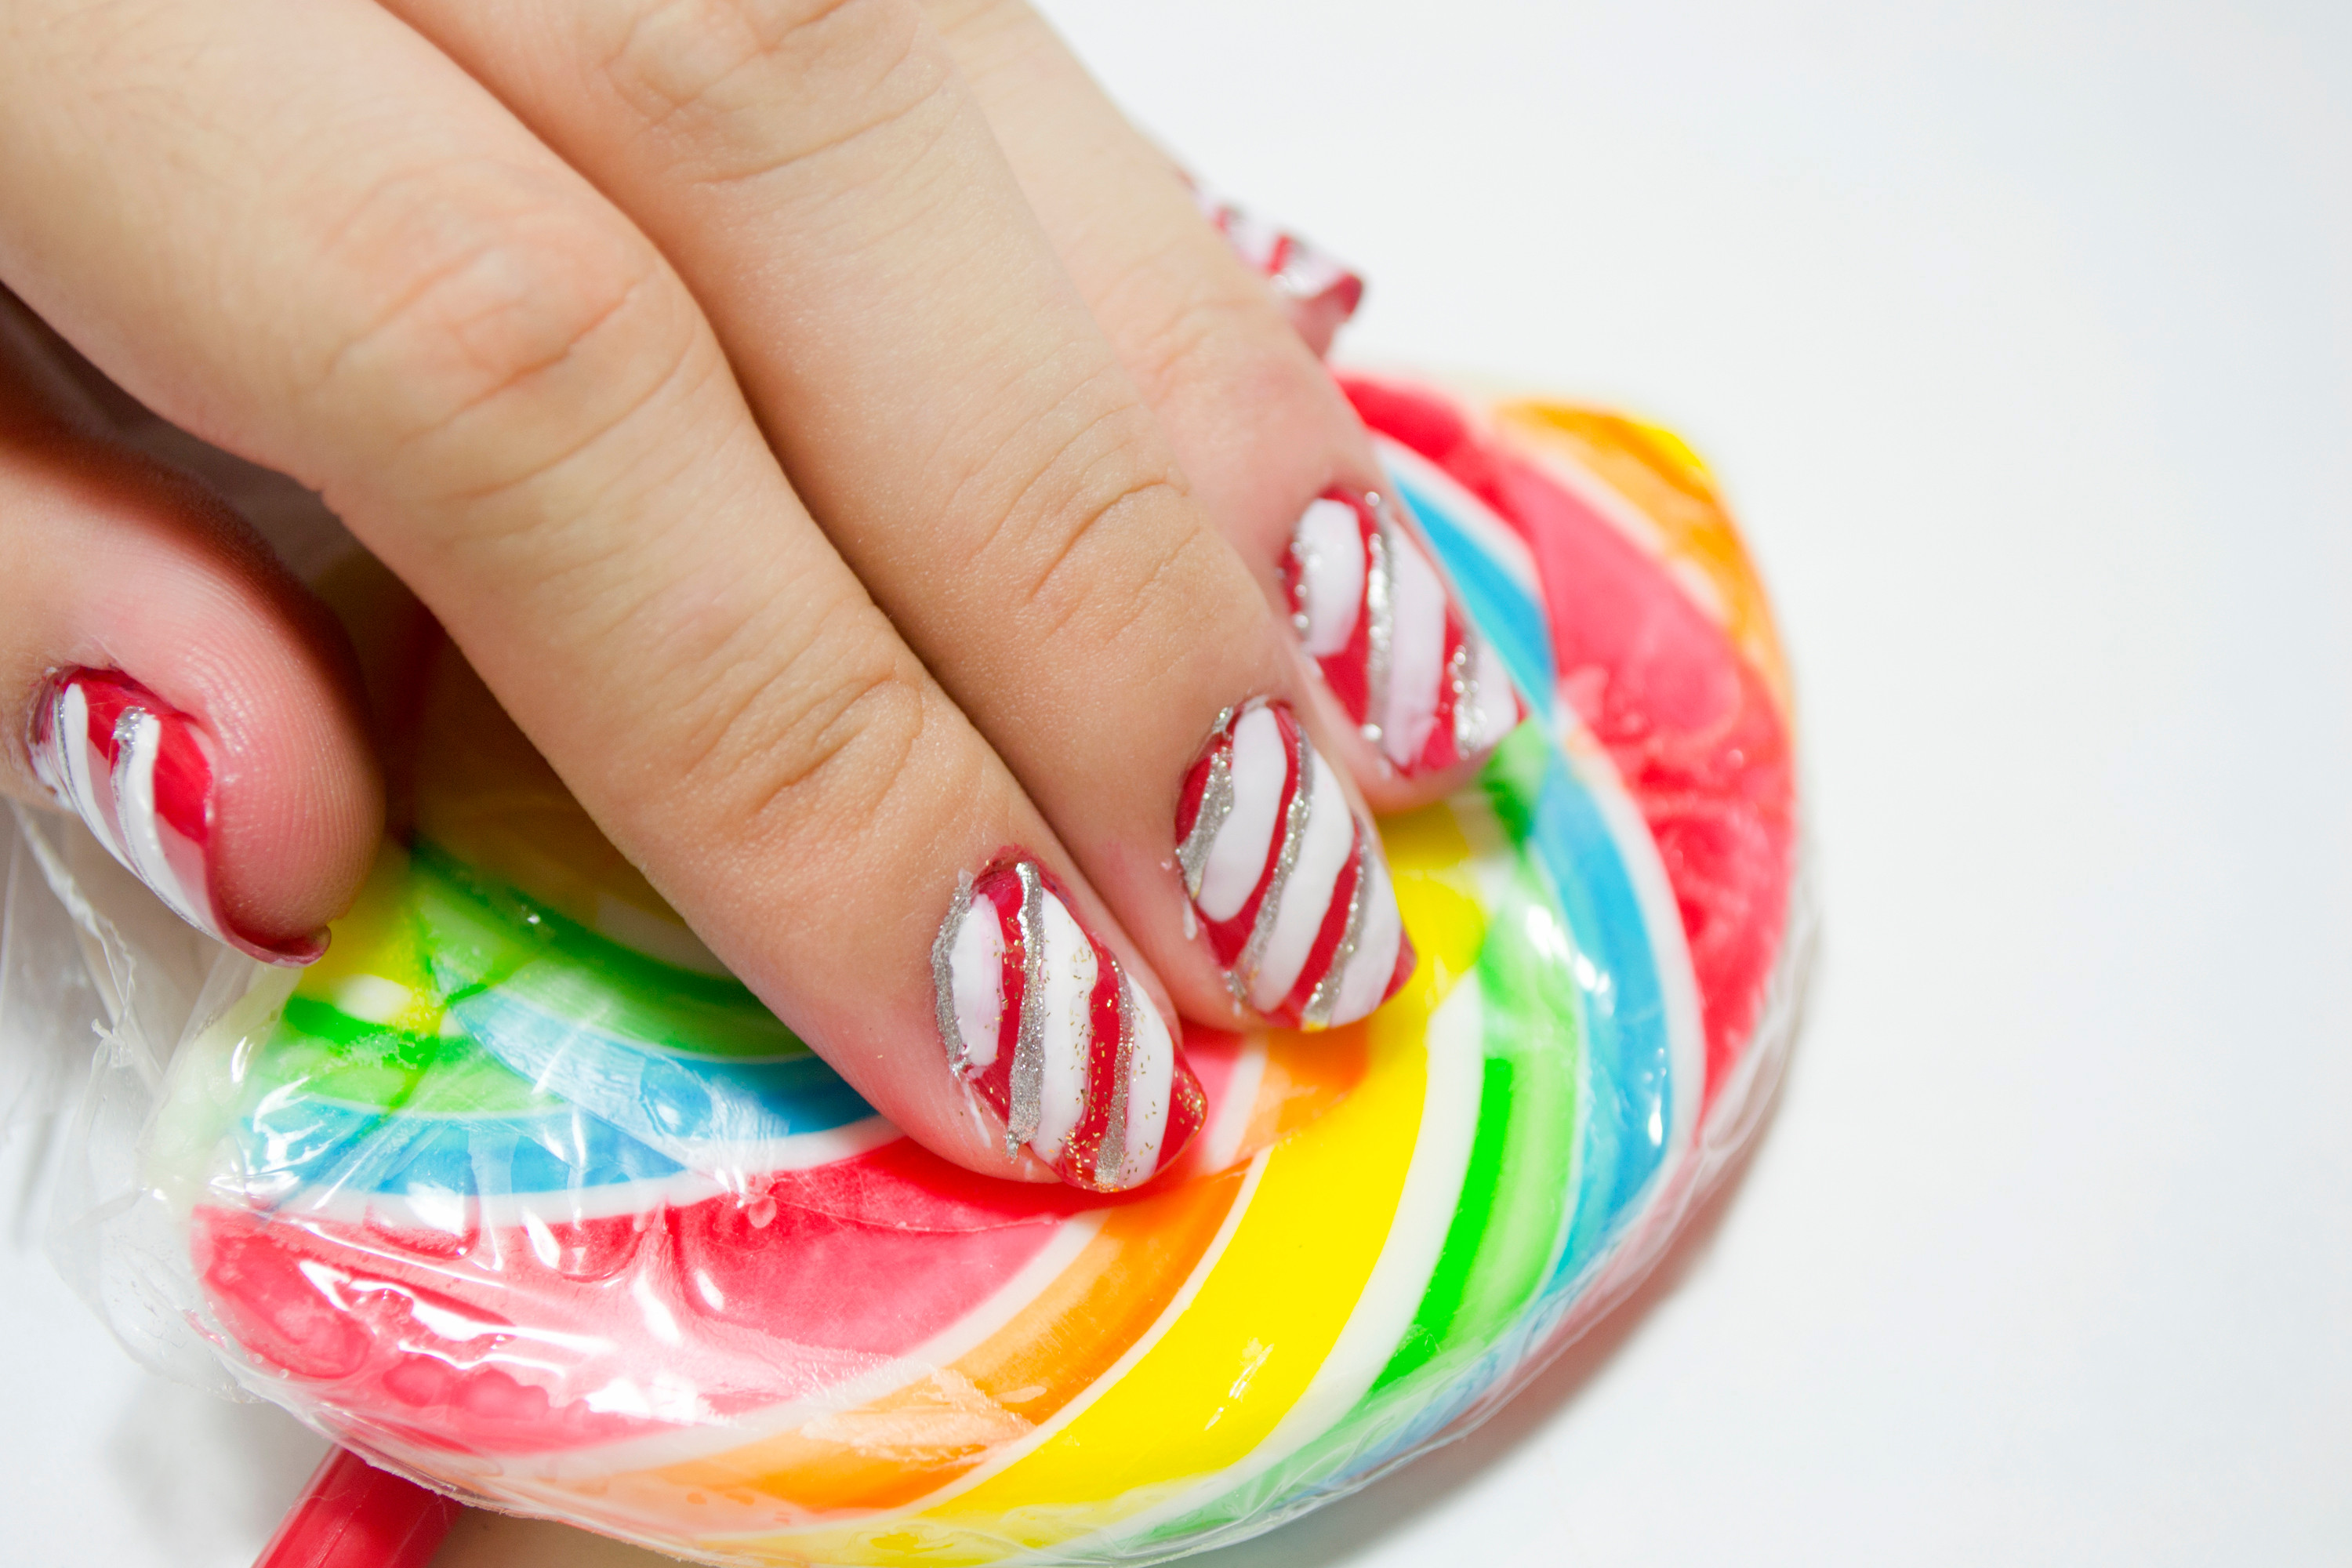 Christmas Nails Candy Cane  How to Make a Christmas Candy Cane Design on Your Nails